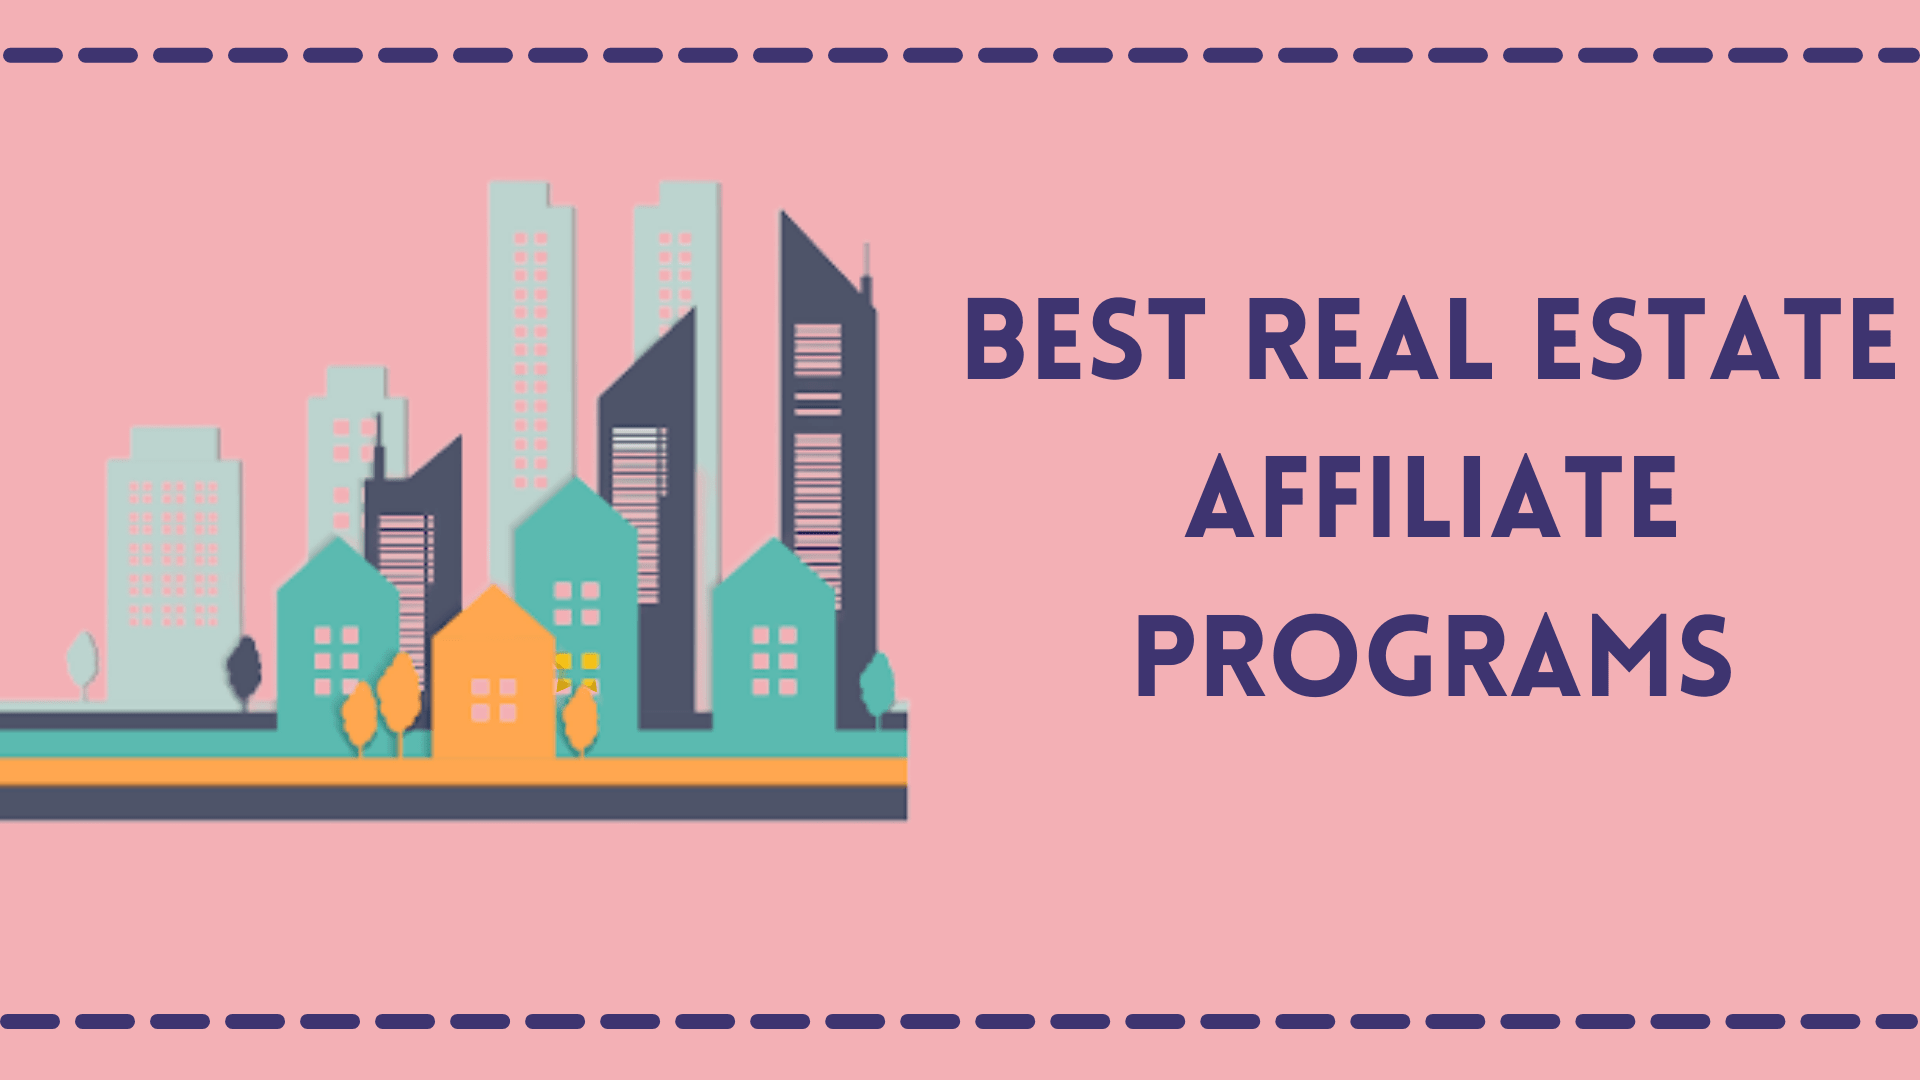 Best Real Estate Affiliate Programs